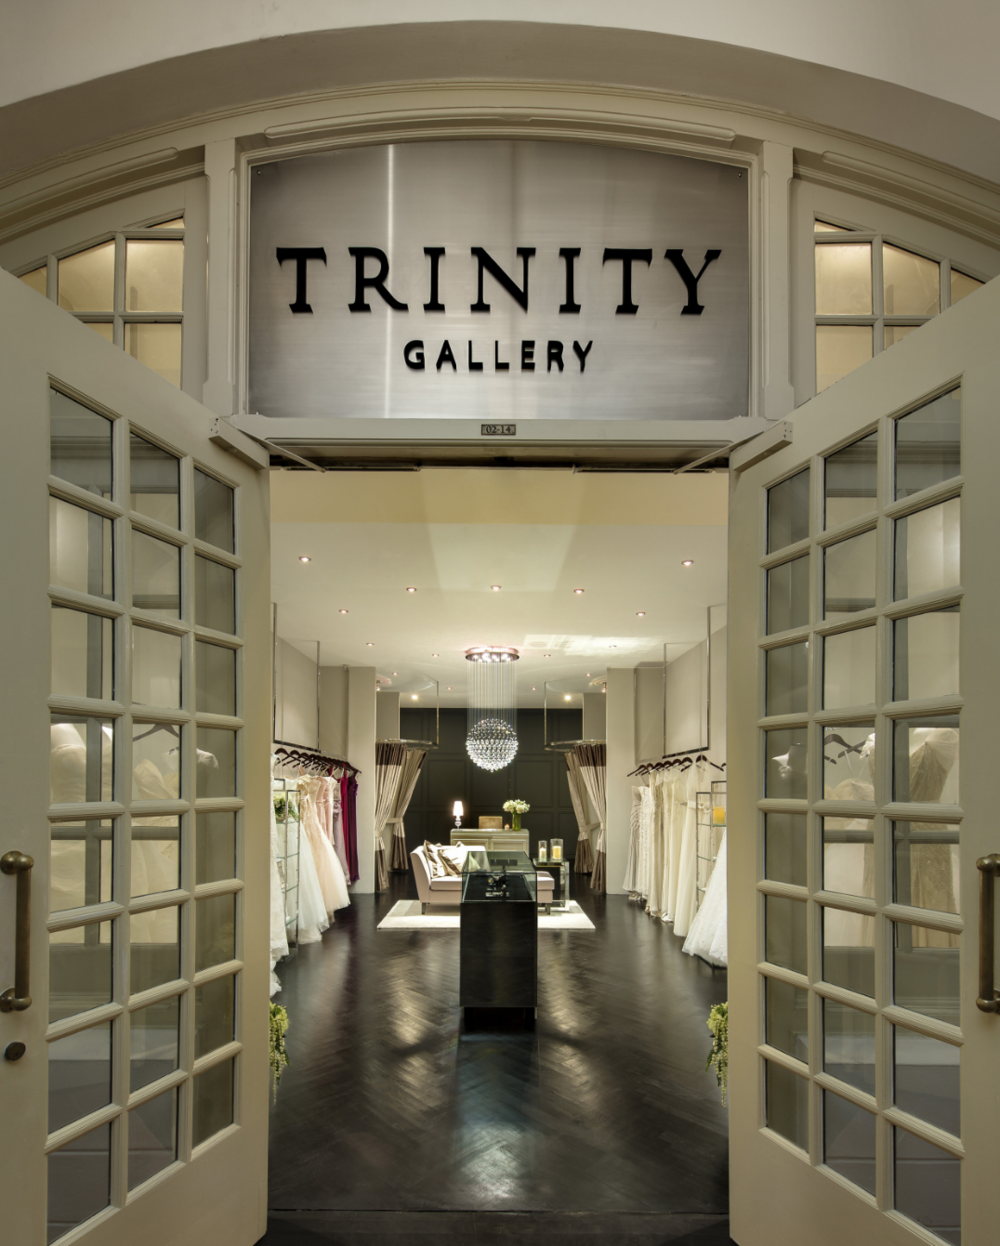 Trinity Gallery in Raffles Hotel, where we bring designers such as Oscar de la Renta , Monique Lhuillier, Jenny Packham, Reem Acra and Marchesa to Asian brides.